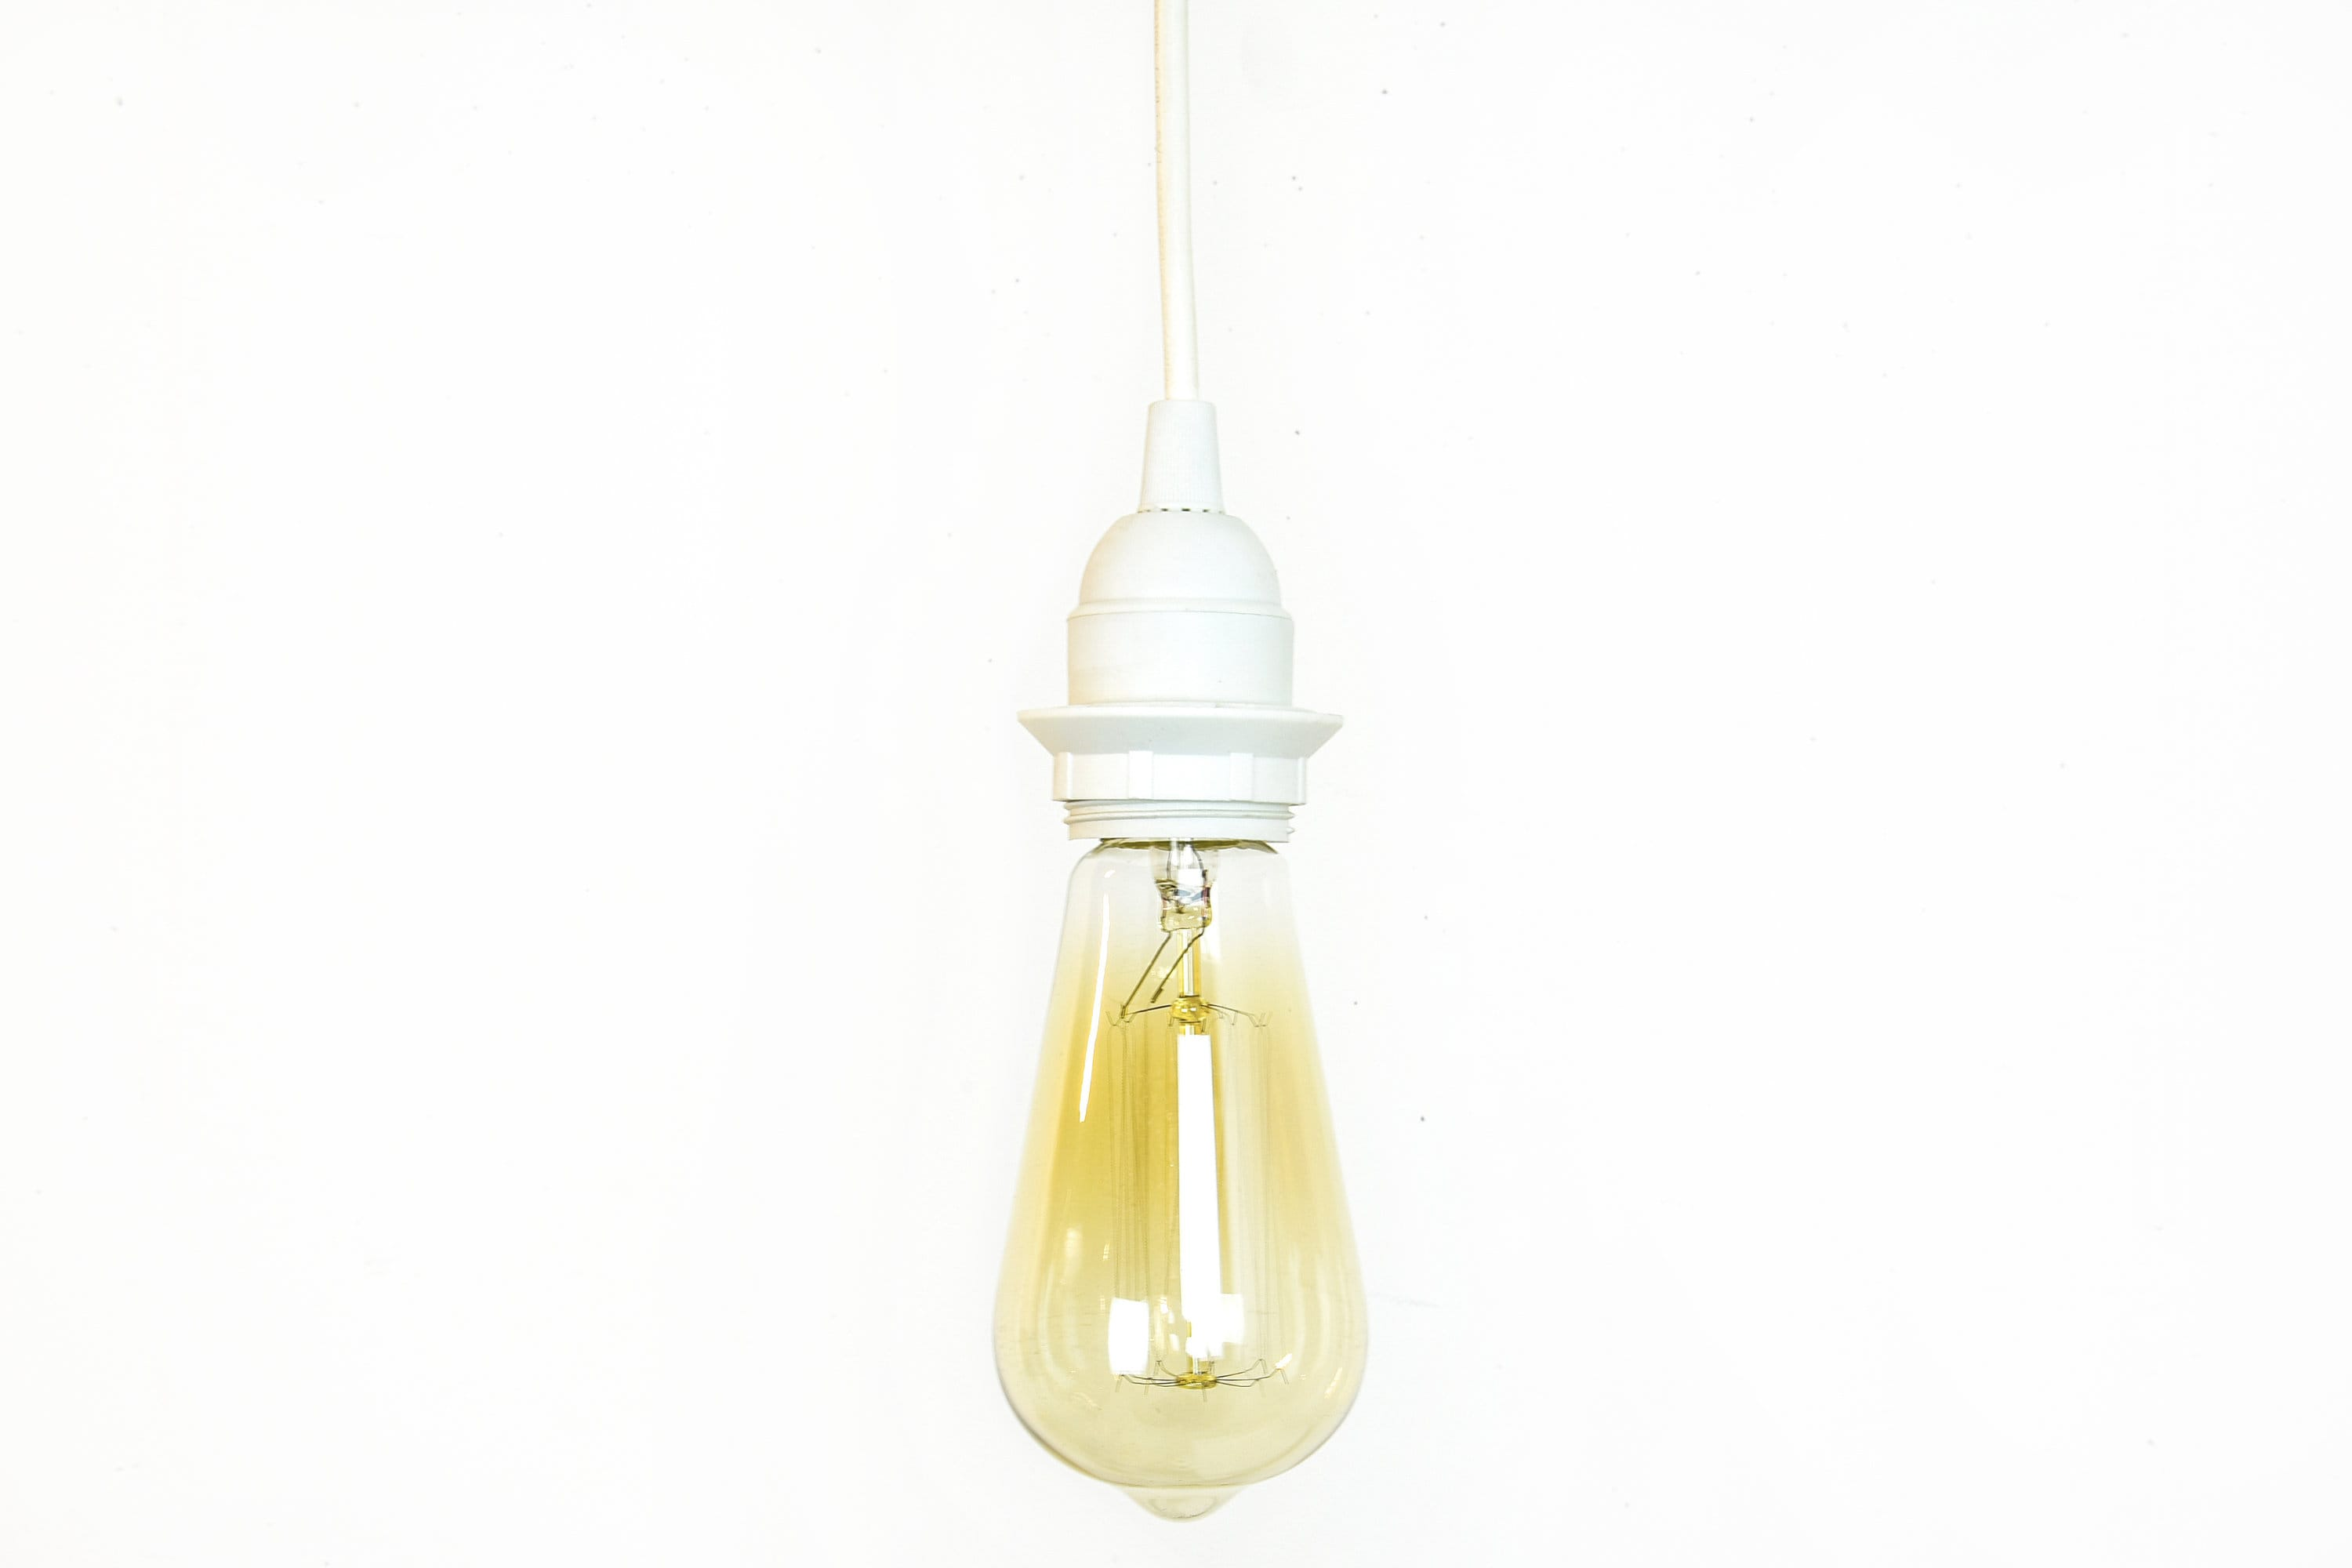 Bare Bulb Hanging Pendant Lights 2 Plug in Hanging Light - Industrial Pendant Lights - Bare Bulb Lighting -  White Ceiling Light